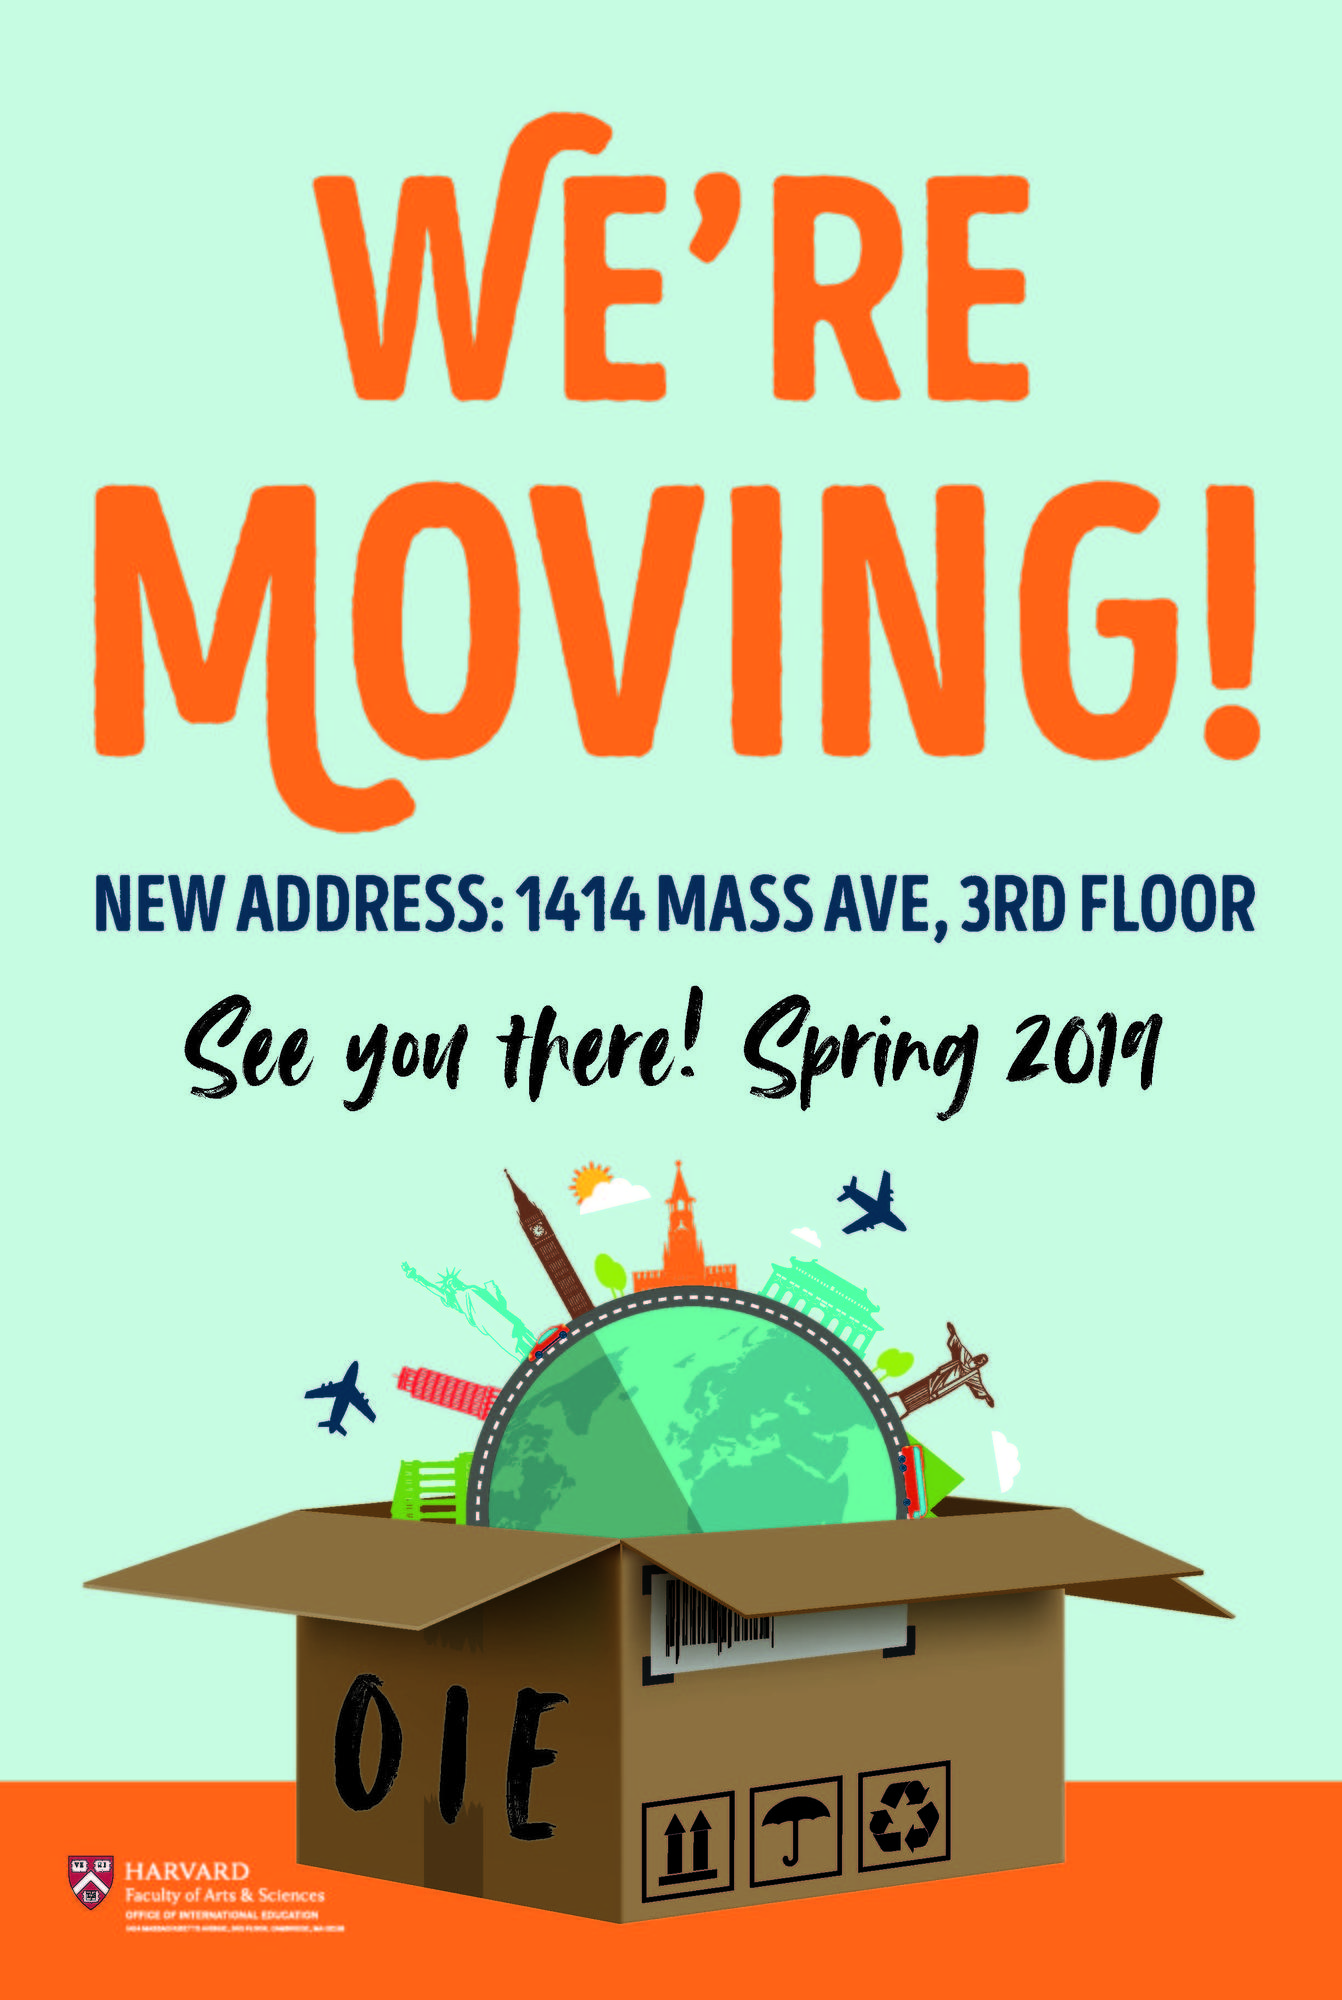 We're Moving! Beginning January 24, 2019 please visit us at 1414 Mass Ave, 3rd Floor